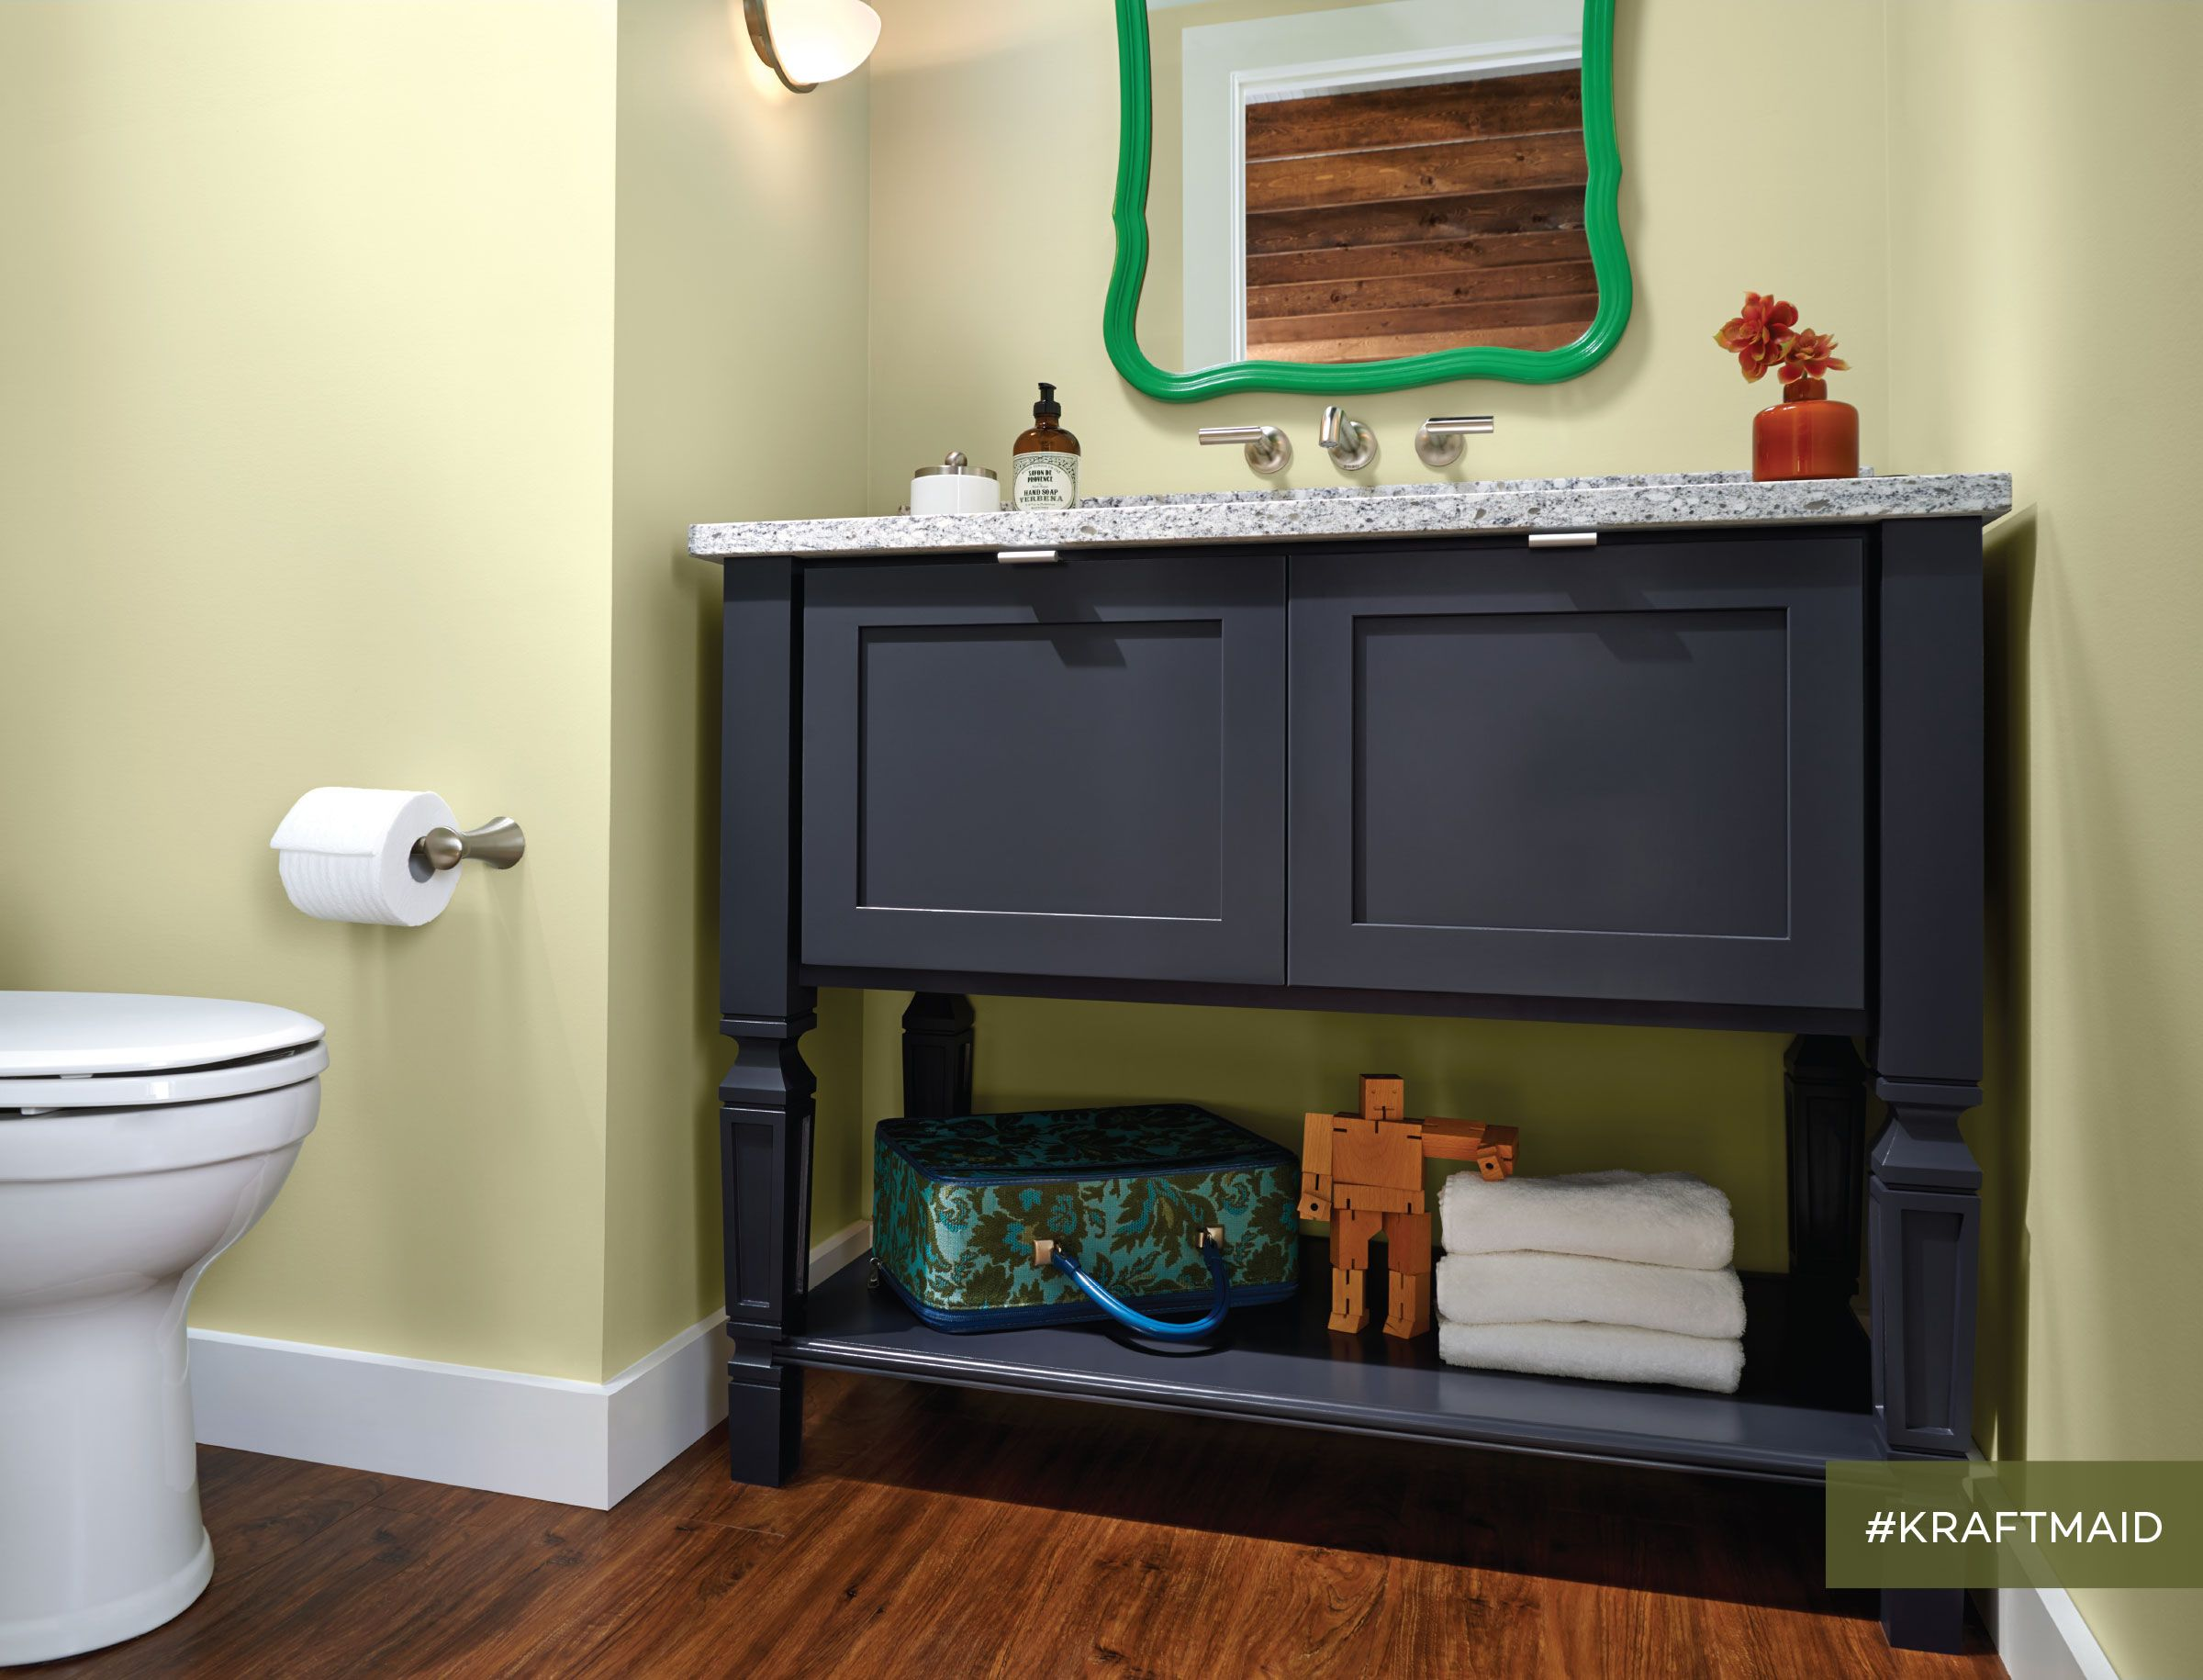 KraftMaidu0027s Console Vanity For The Bathroom Looks Like Furniture And Can Be  Personalized With Your Choice